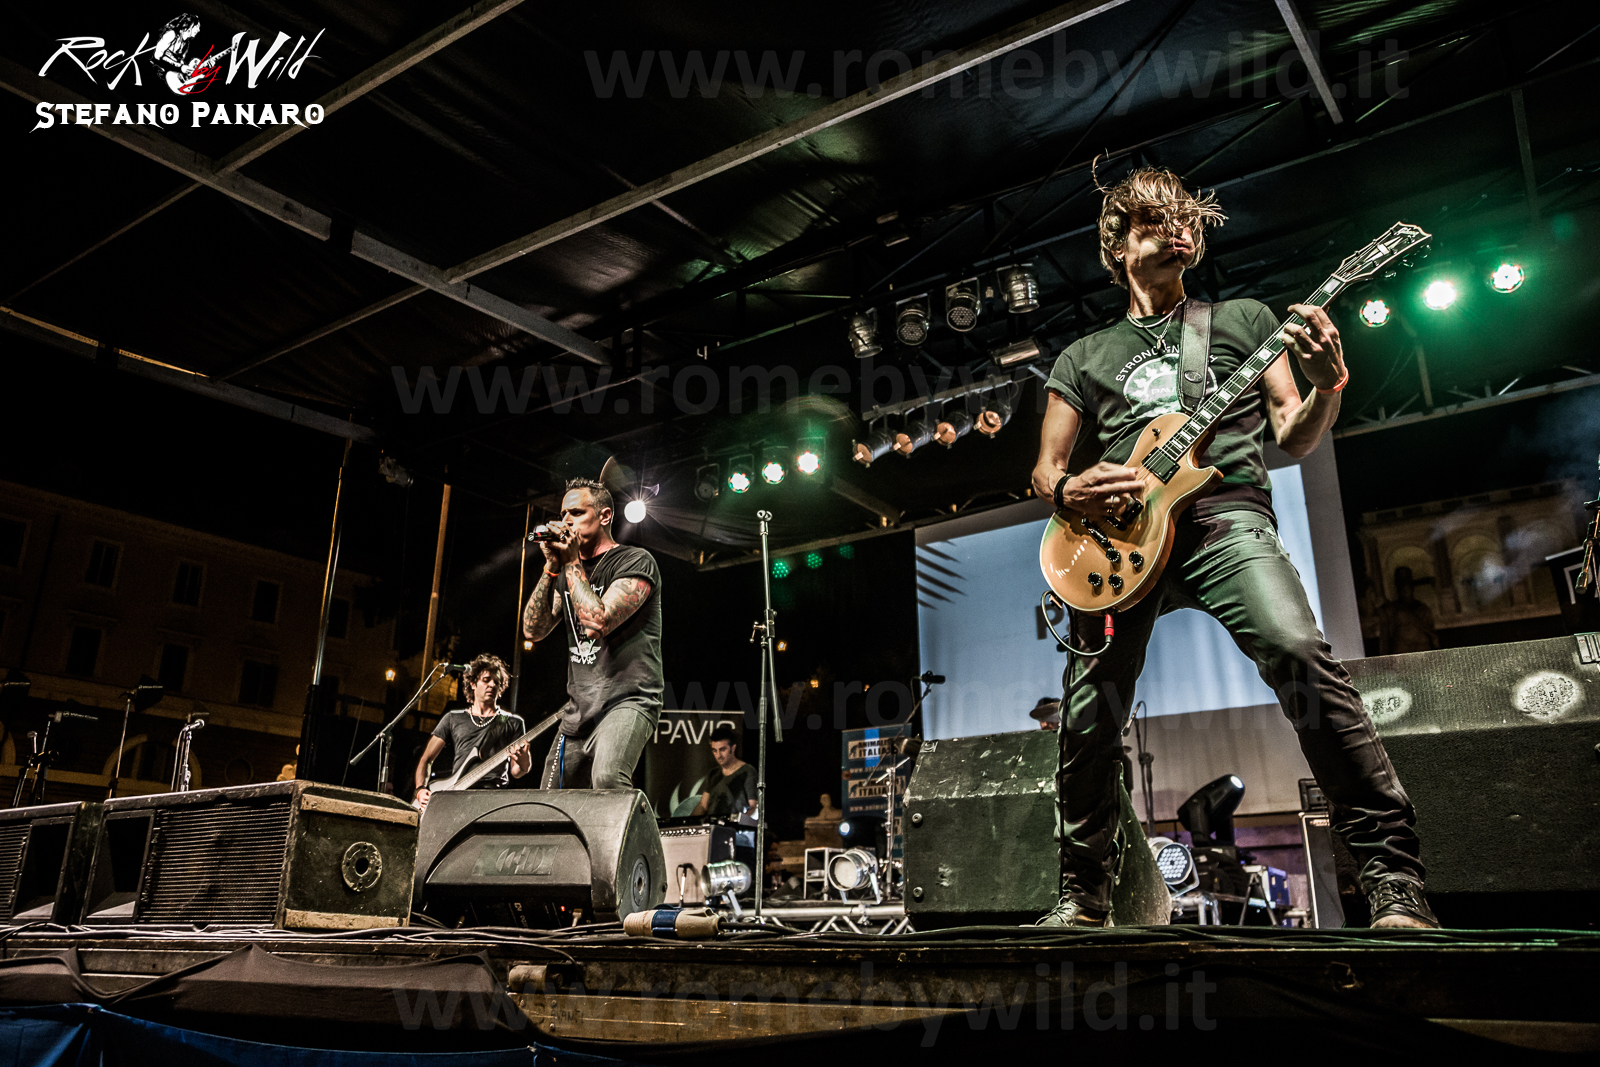 Pavic @ Animal Aid Live! - Piazza del Popolo - 19 09 2015